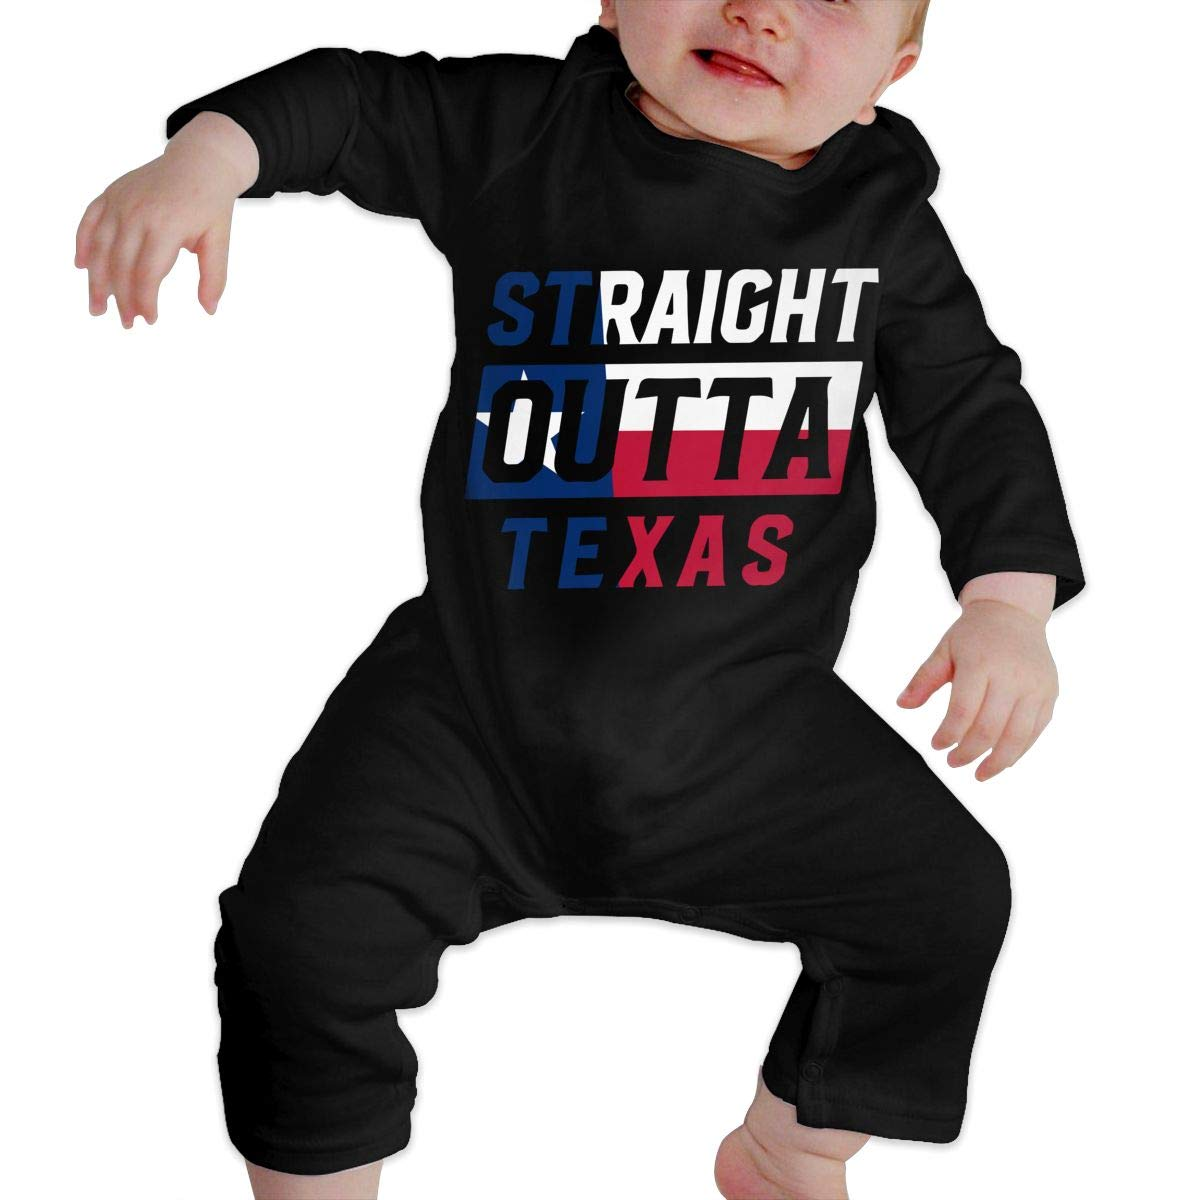 LBJQ8 Straight Outta Texas Newborn Toddler Baby Soft /& Breathable Romper Jumpsuit Outfits Clothes